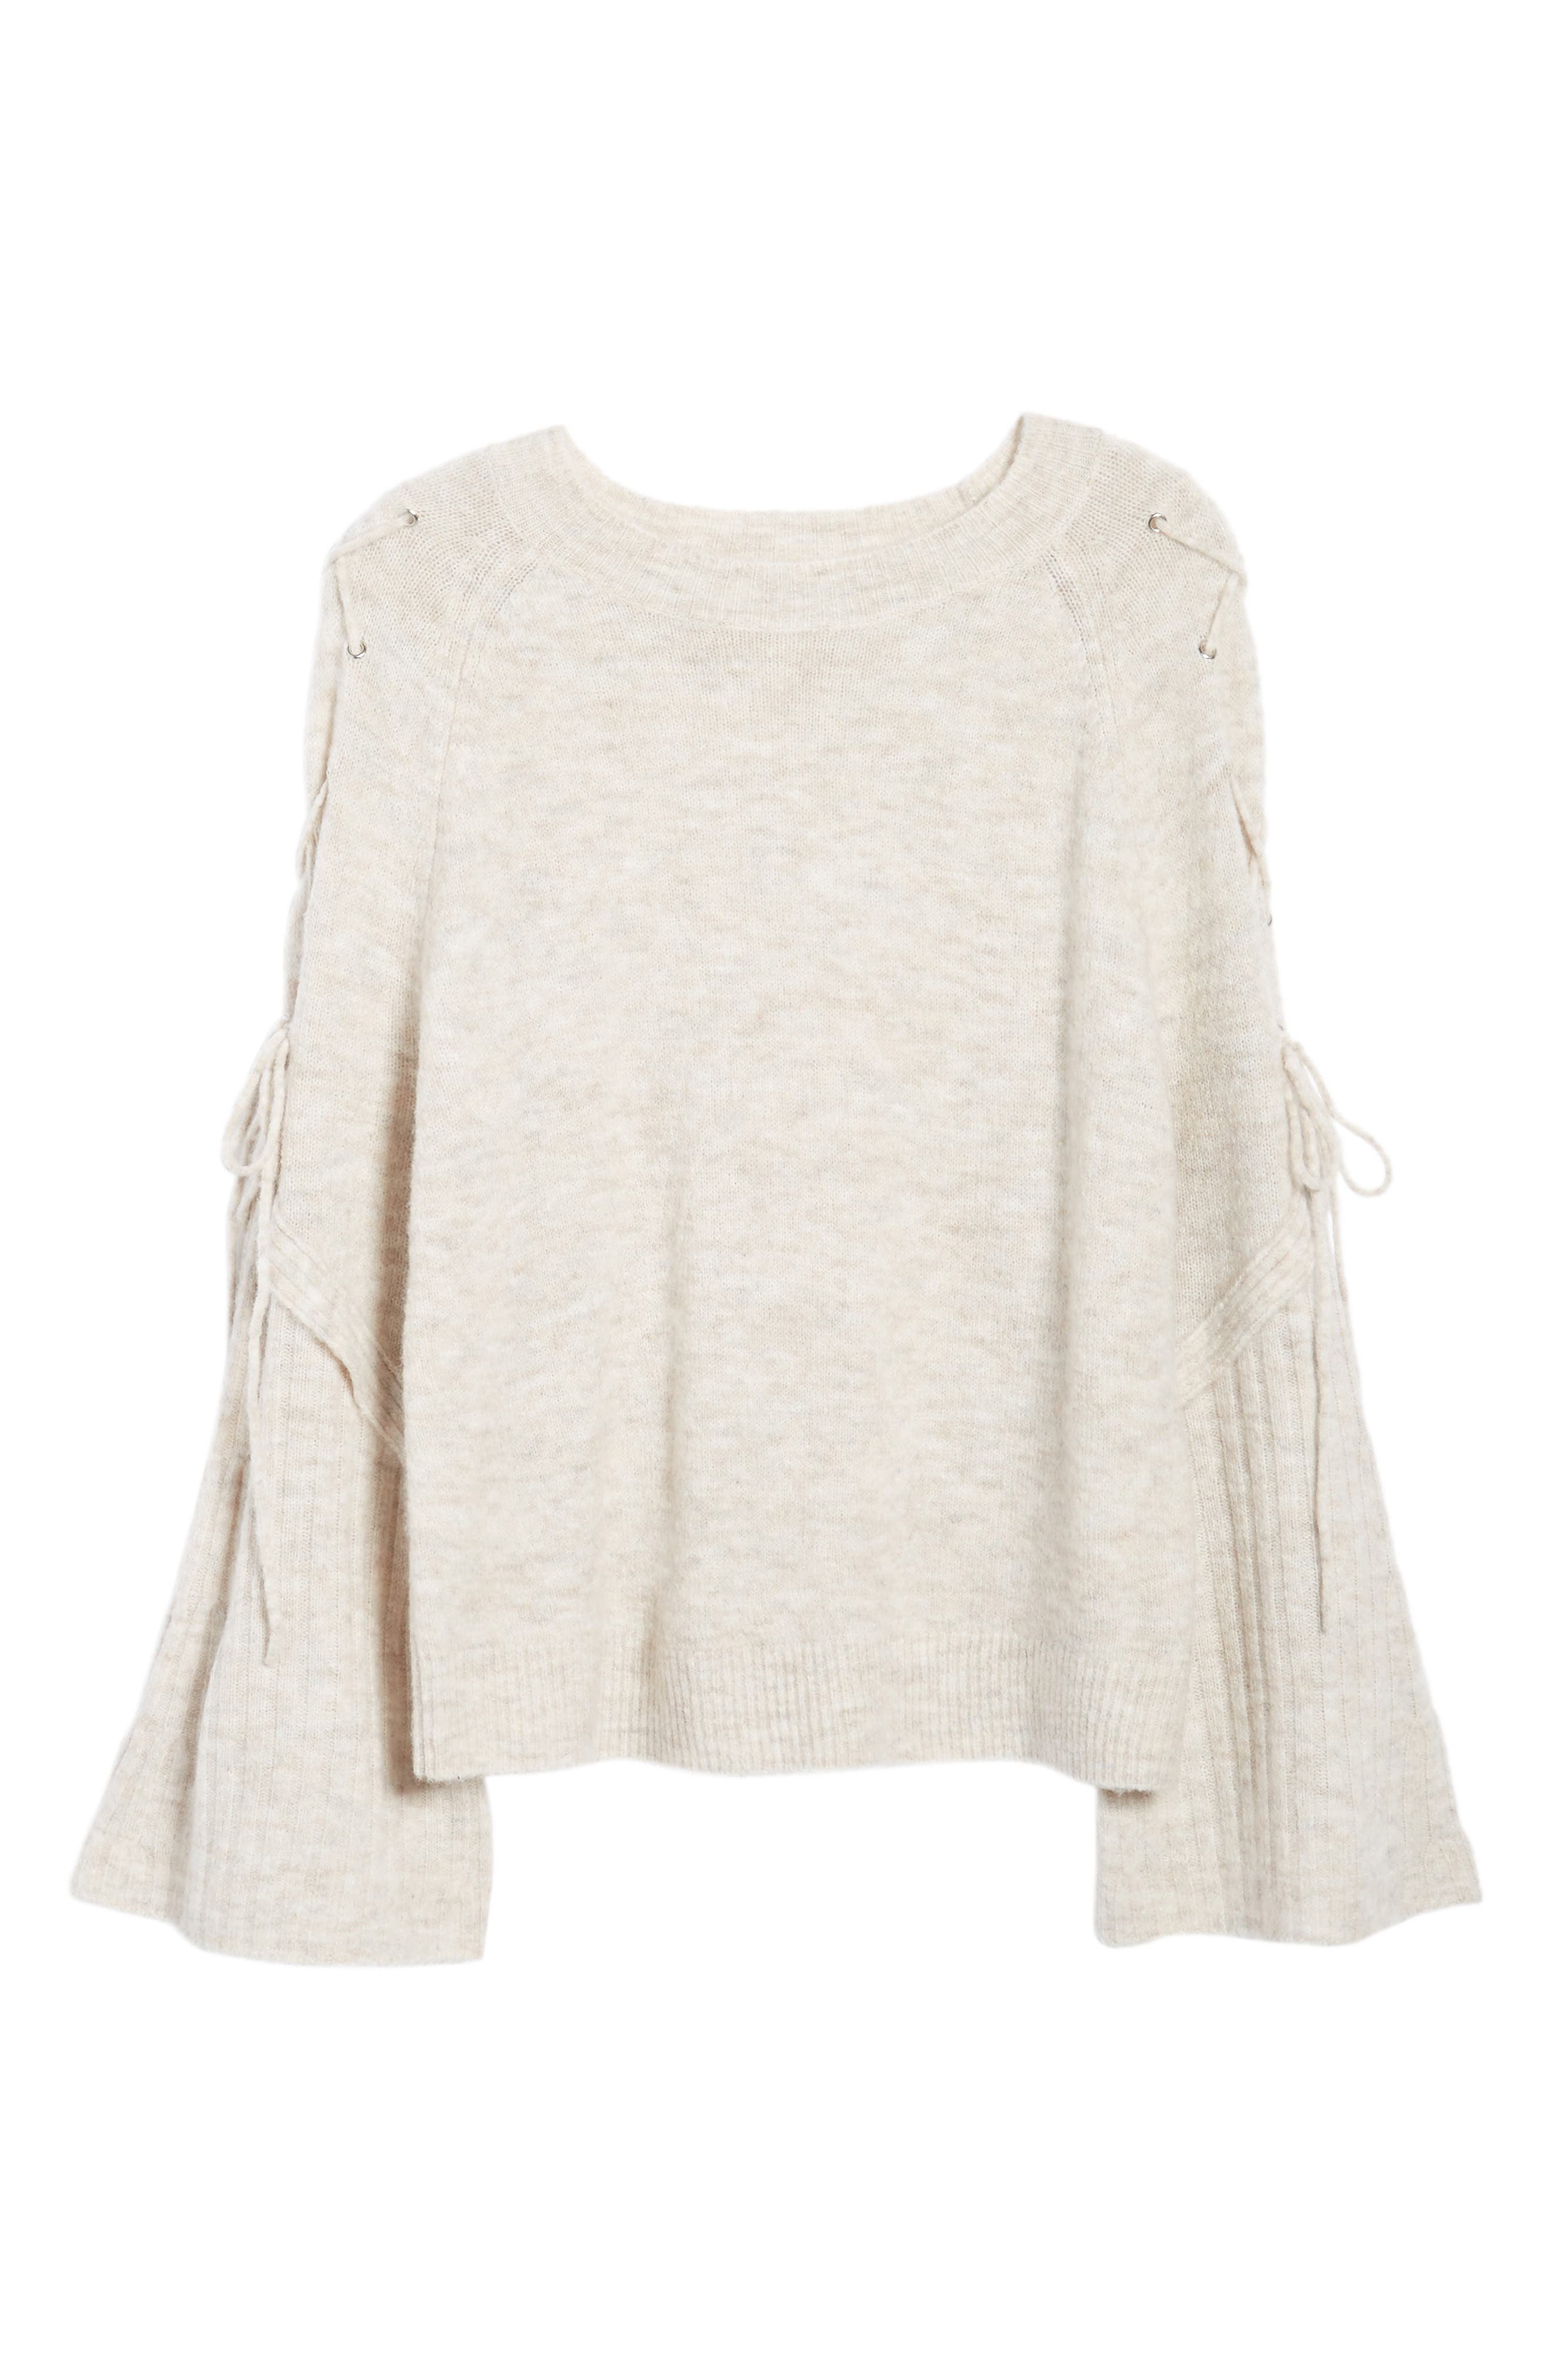 Lace Up Shoulder Sweater,                             Alternate thumbnail 6, color,                             260